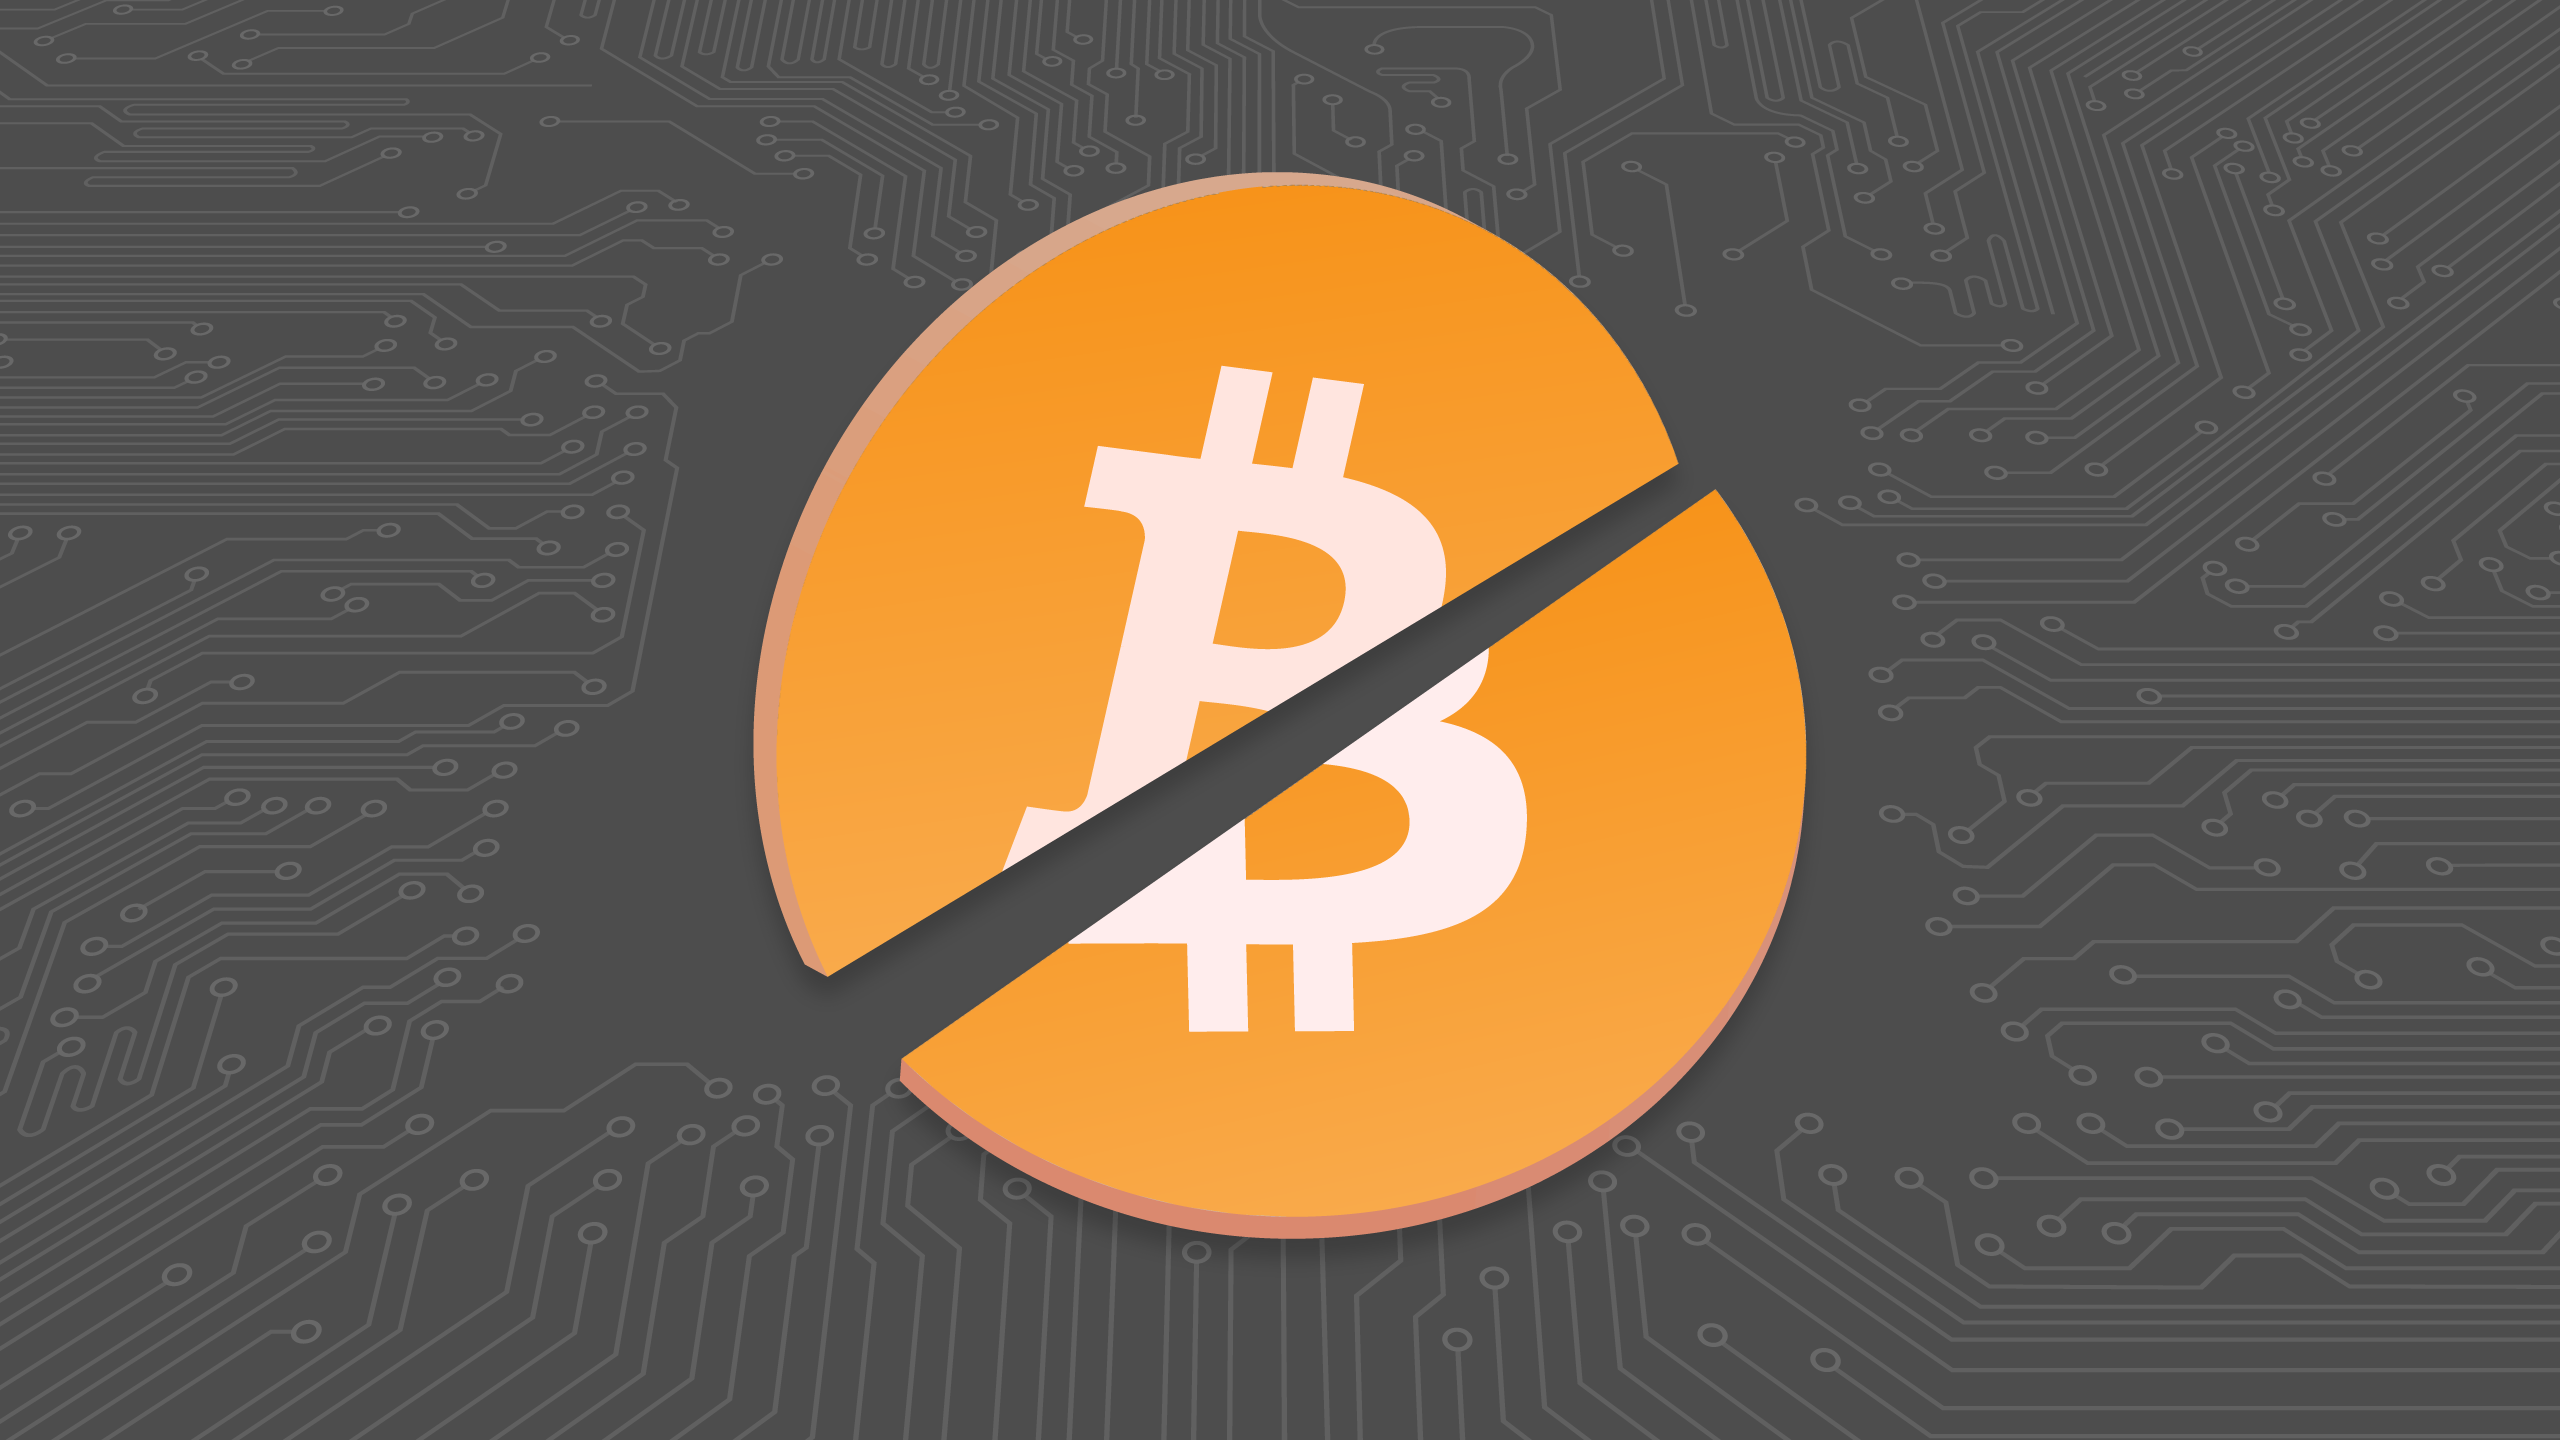 Bitcoincashbchall data about the cryptocurrency description